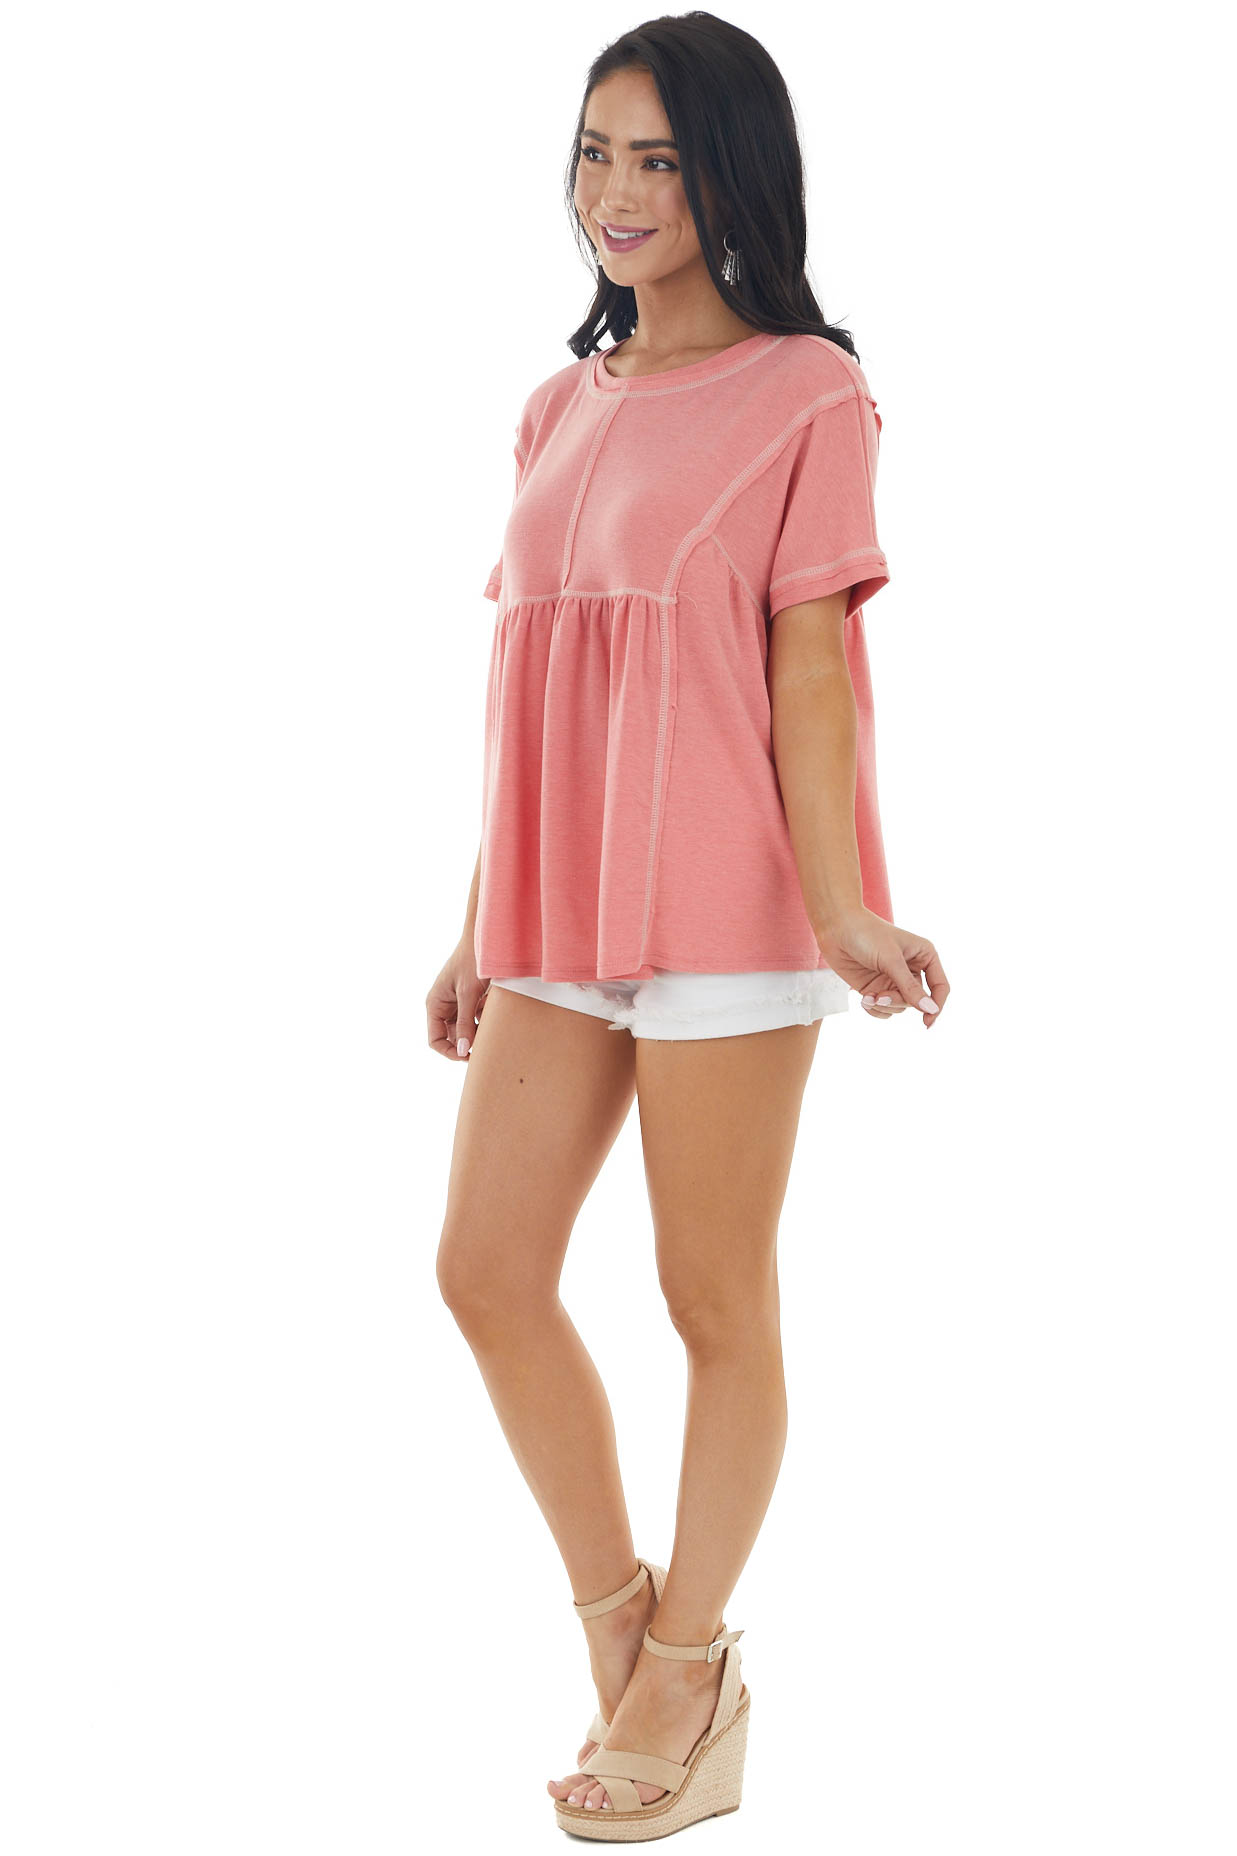 Heathered Coral Short Sleeve Knit Top with Exposed Stitching